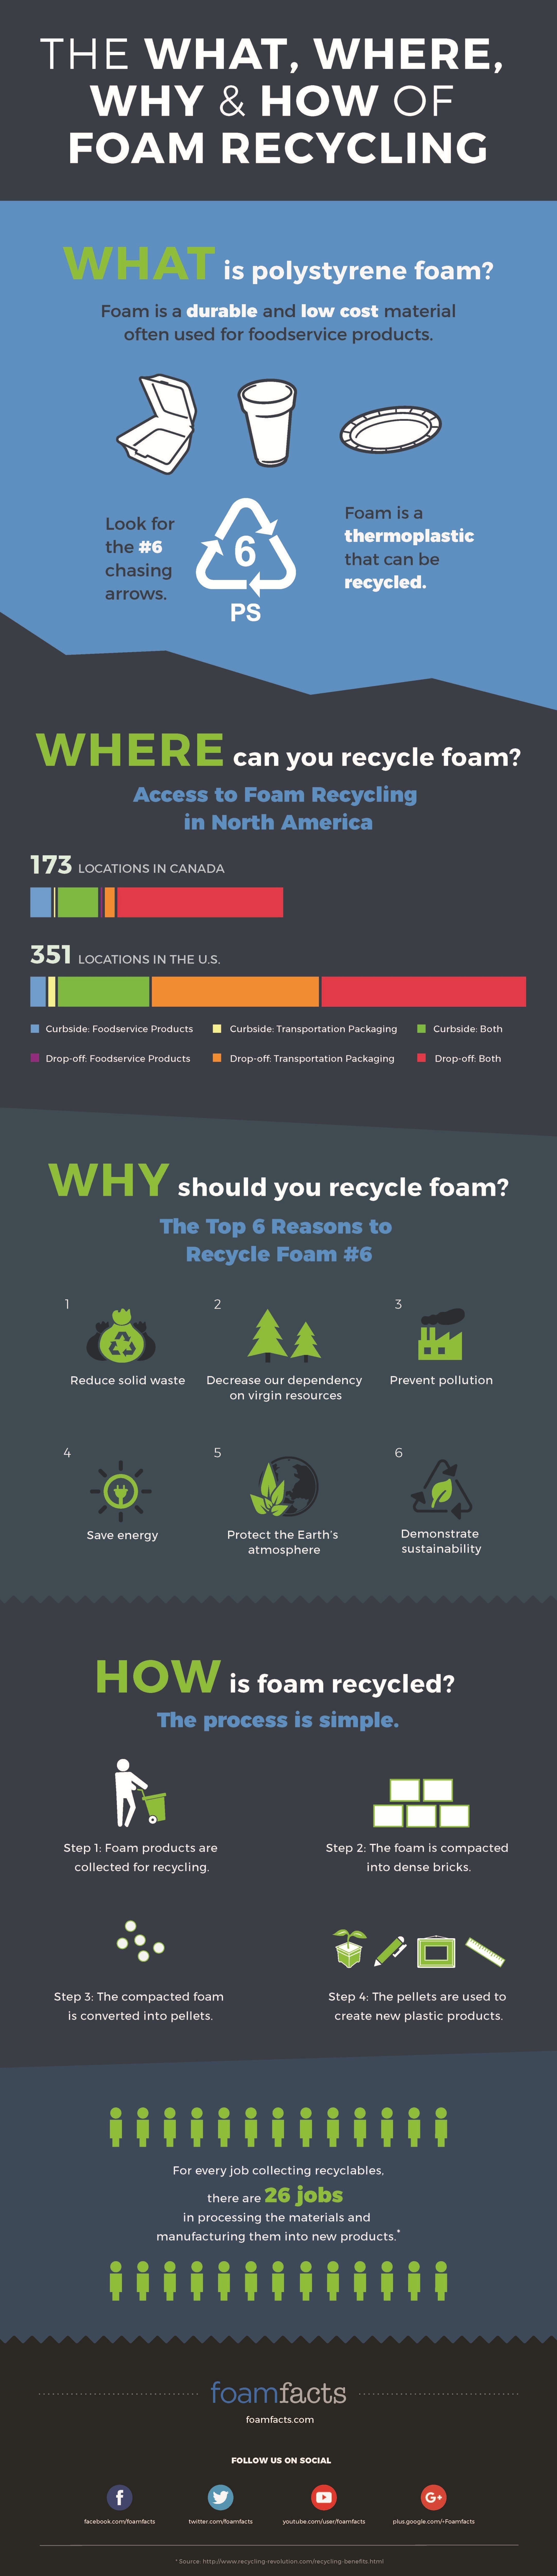 foam-recycling-infographic